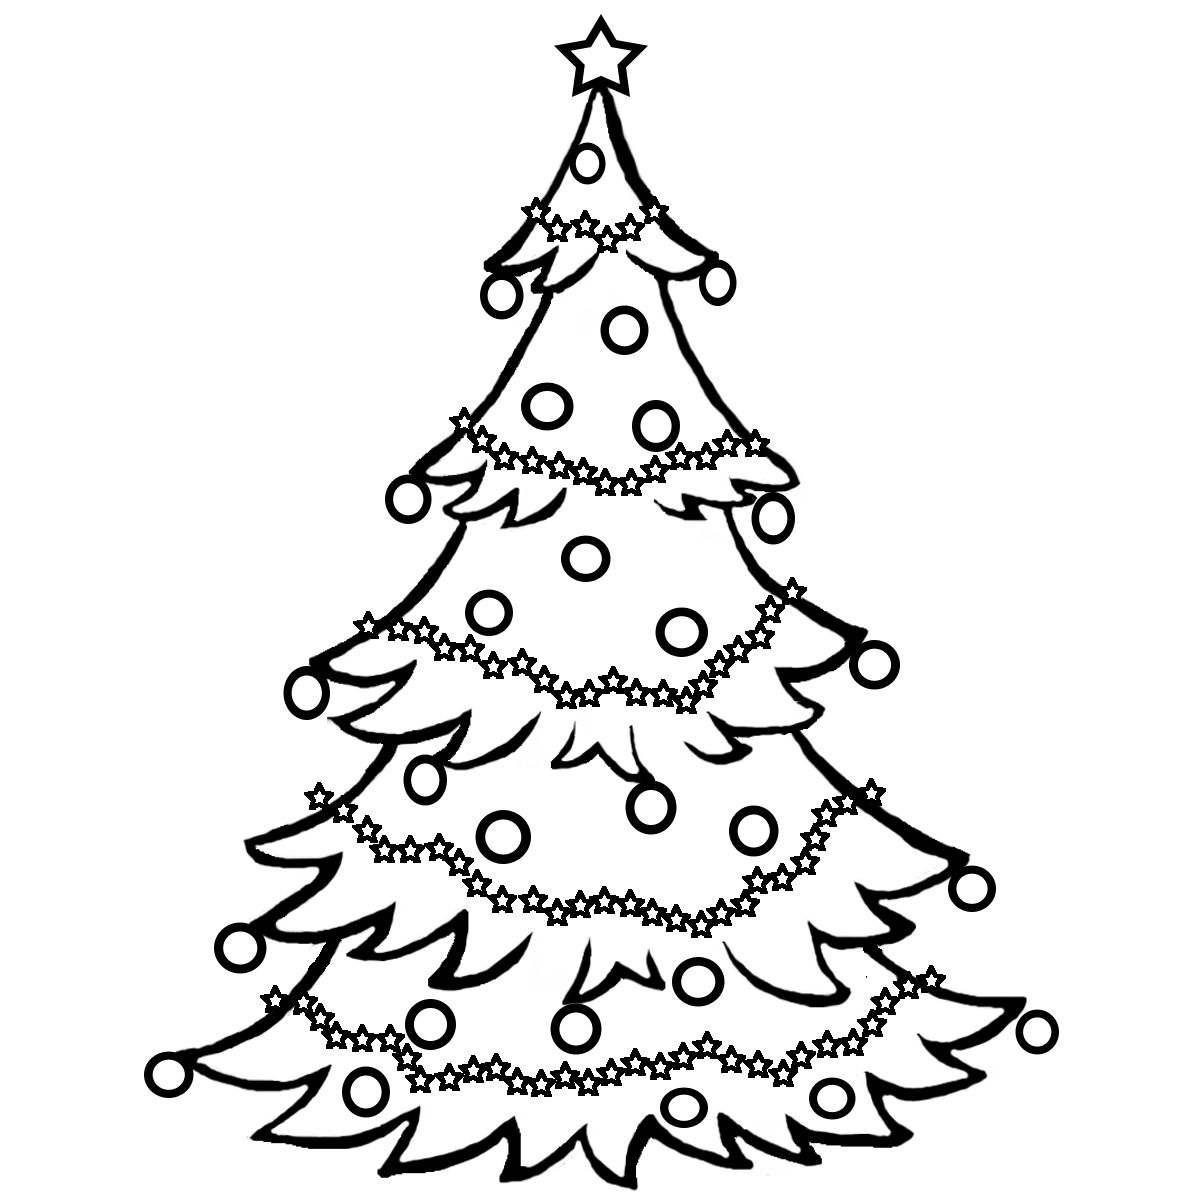 christmas tree rudolph rudolph coloring pages printable coloringchristmas tree coloring pages prints and colors - Birch Tree Branches Coloring Pages